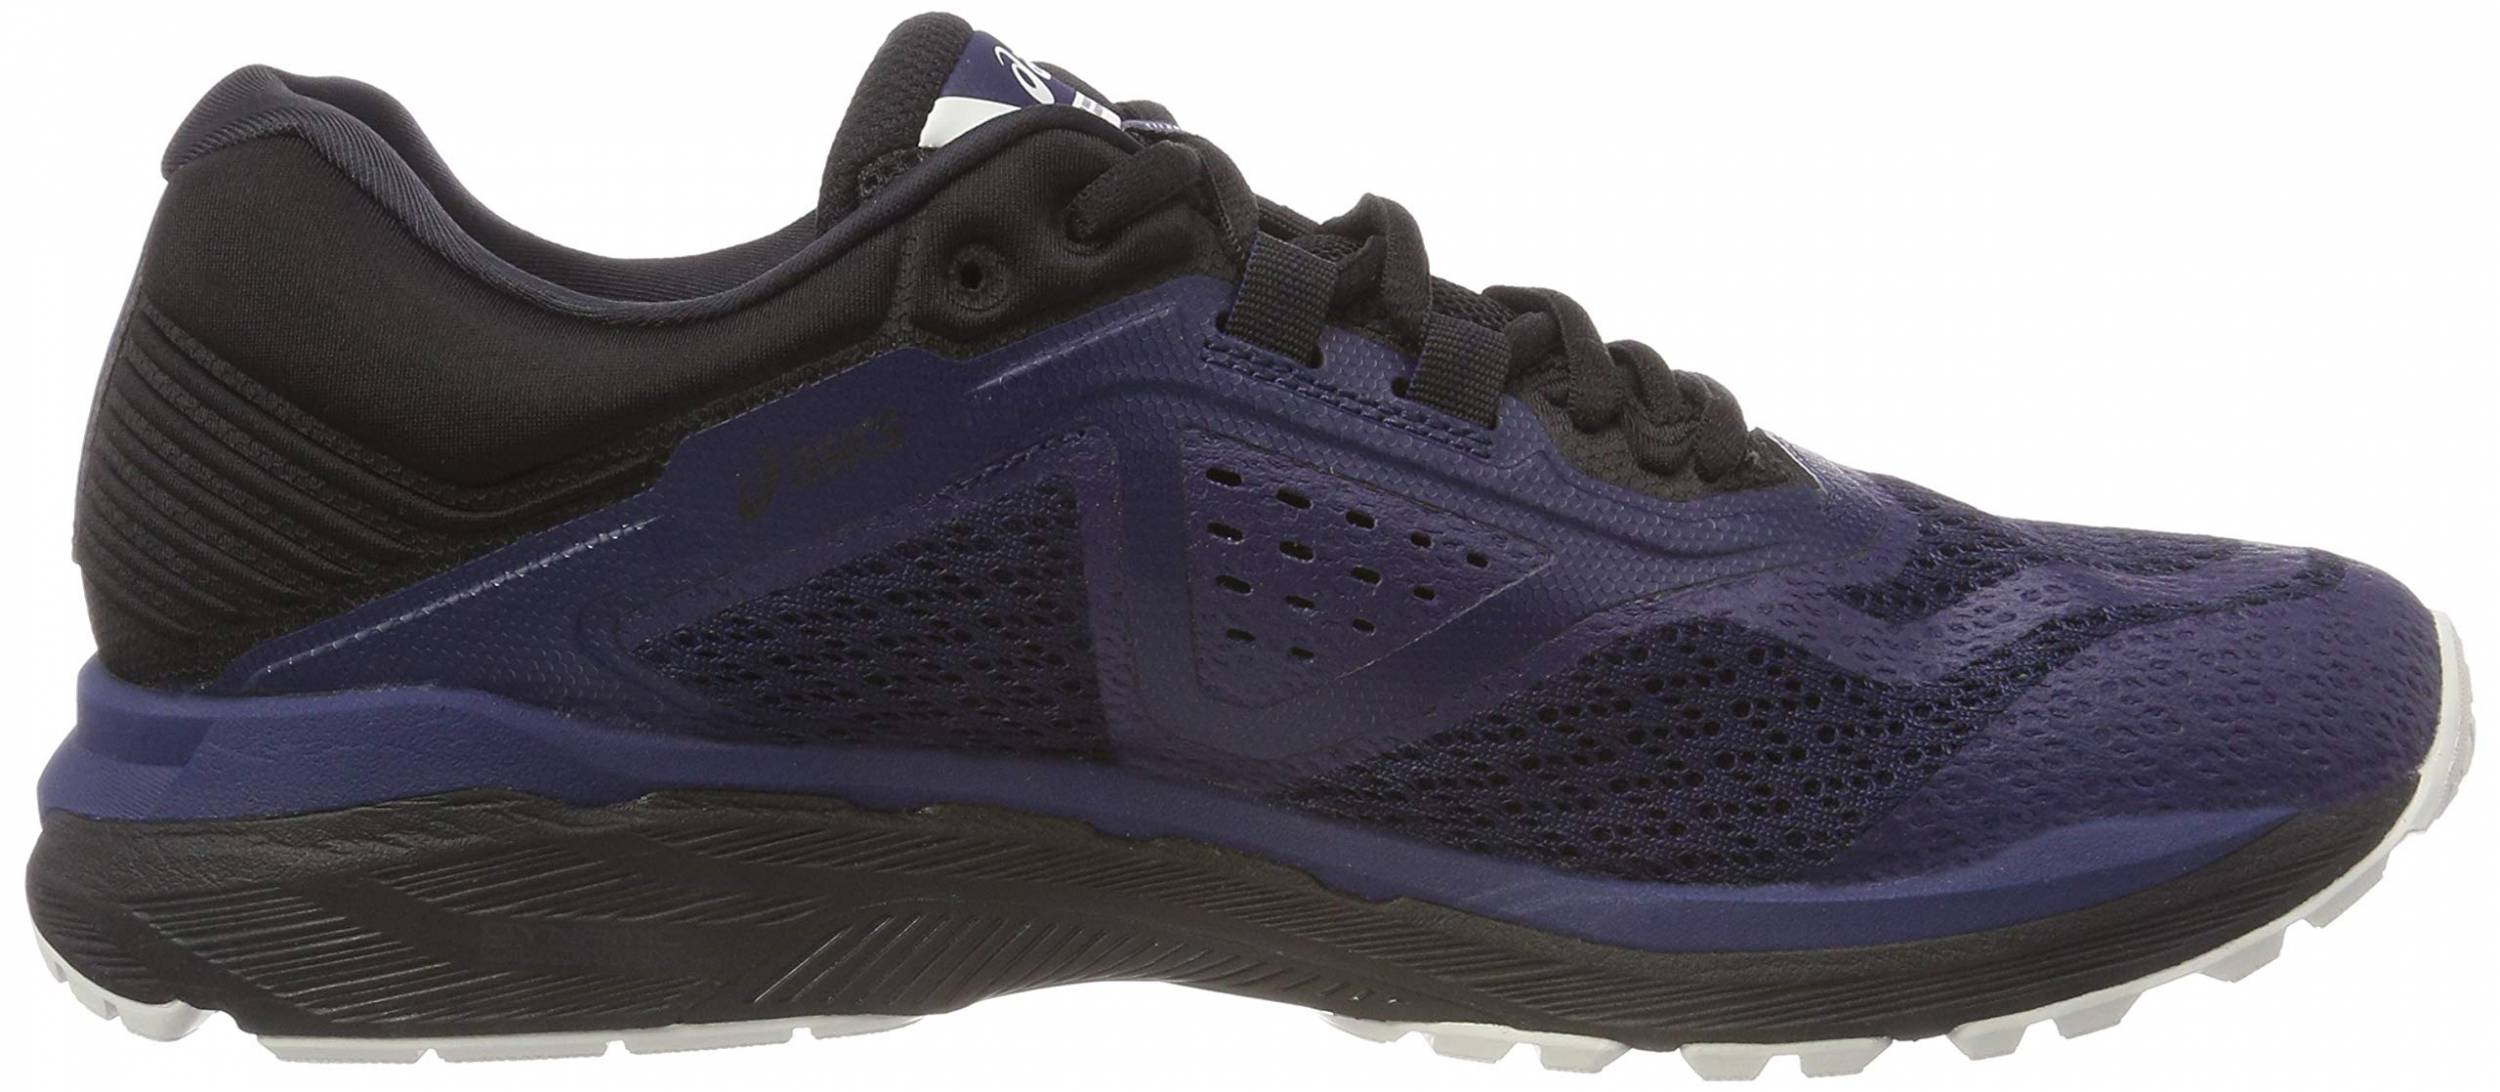 Stability Trail Running Shoes